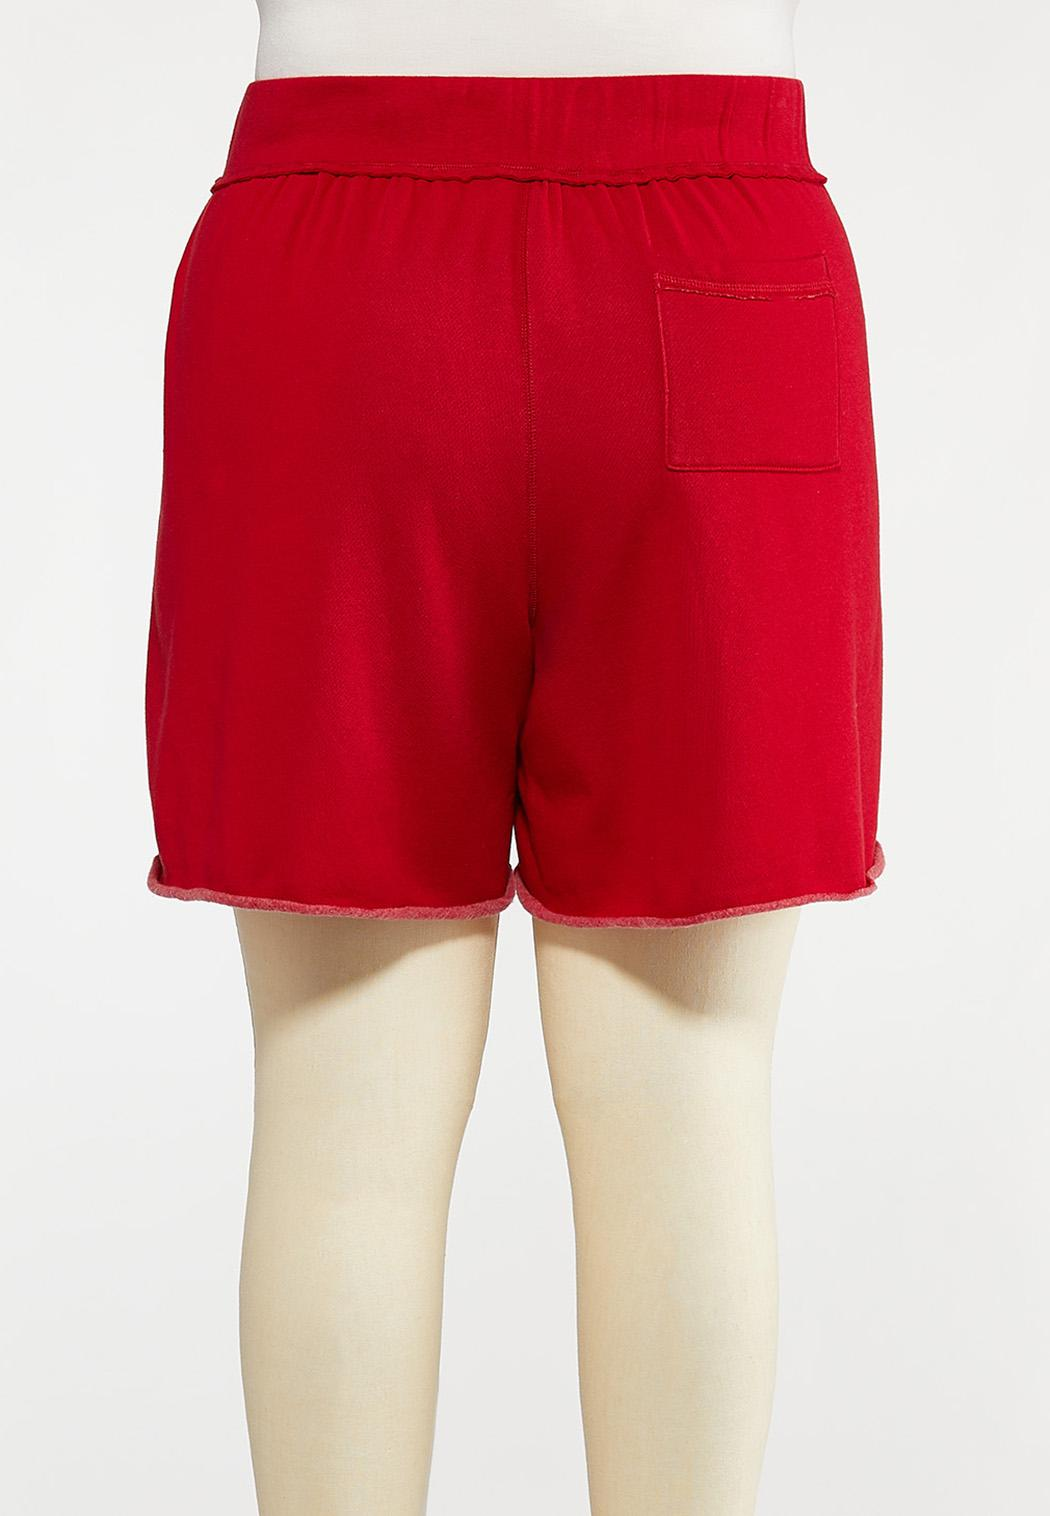 Plus Size Red Fleece Lined Shorts (Item #44272416)